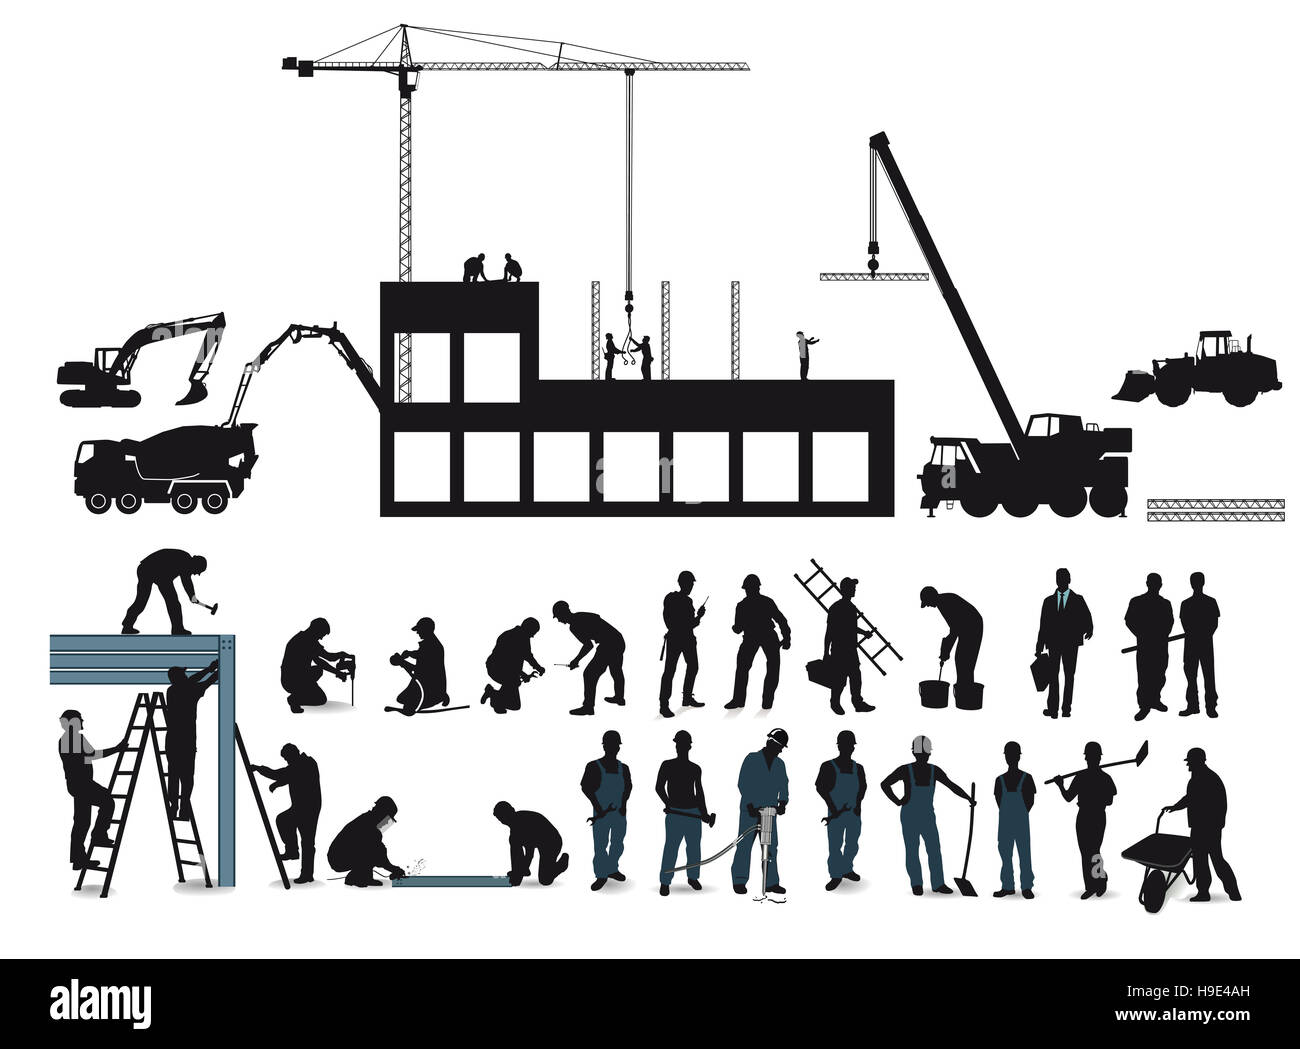 Construction project with construction workers Stock Photo